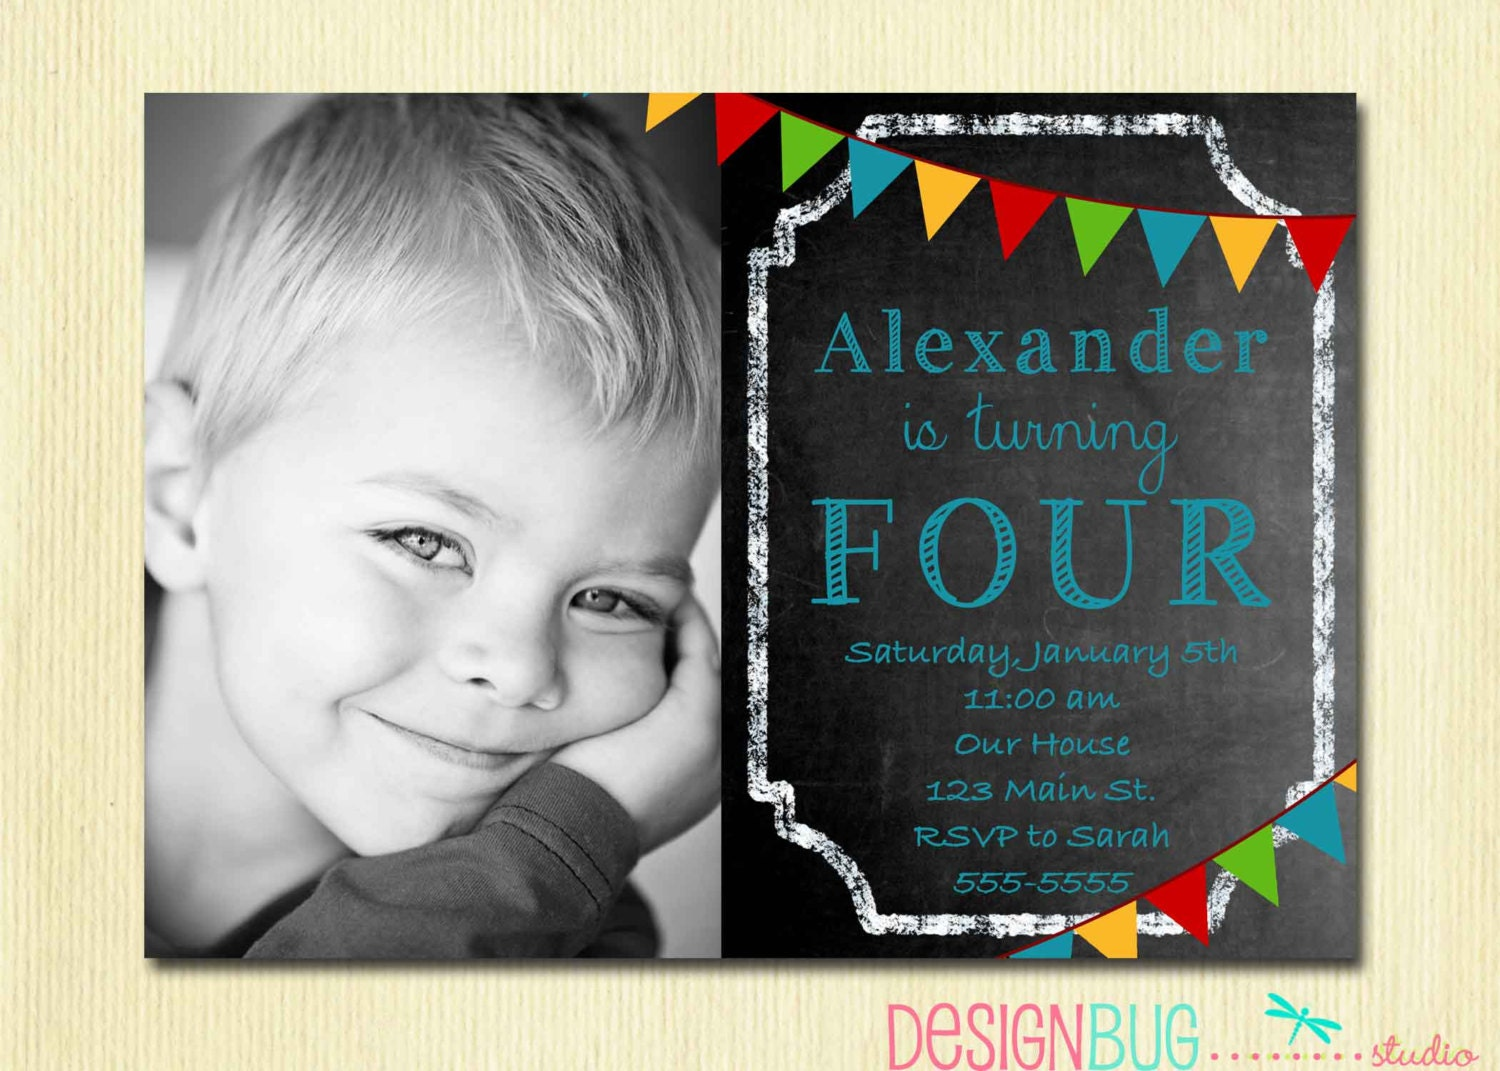 Boys Chalkboard Birthday Invitation 1 2 3 4 5100 year – 3 Year Old Birthday Invitation